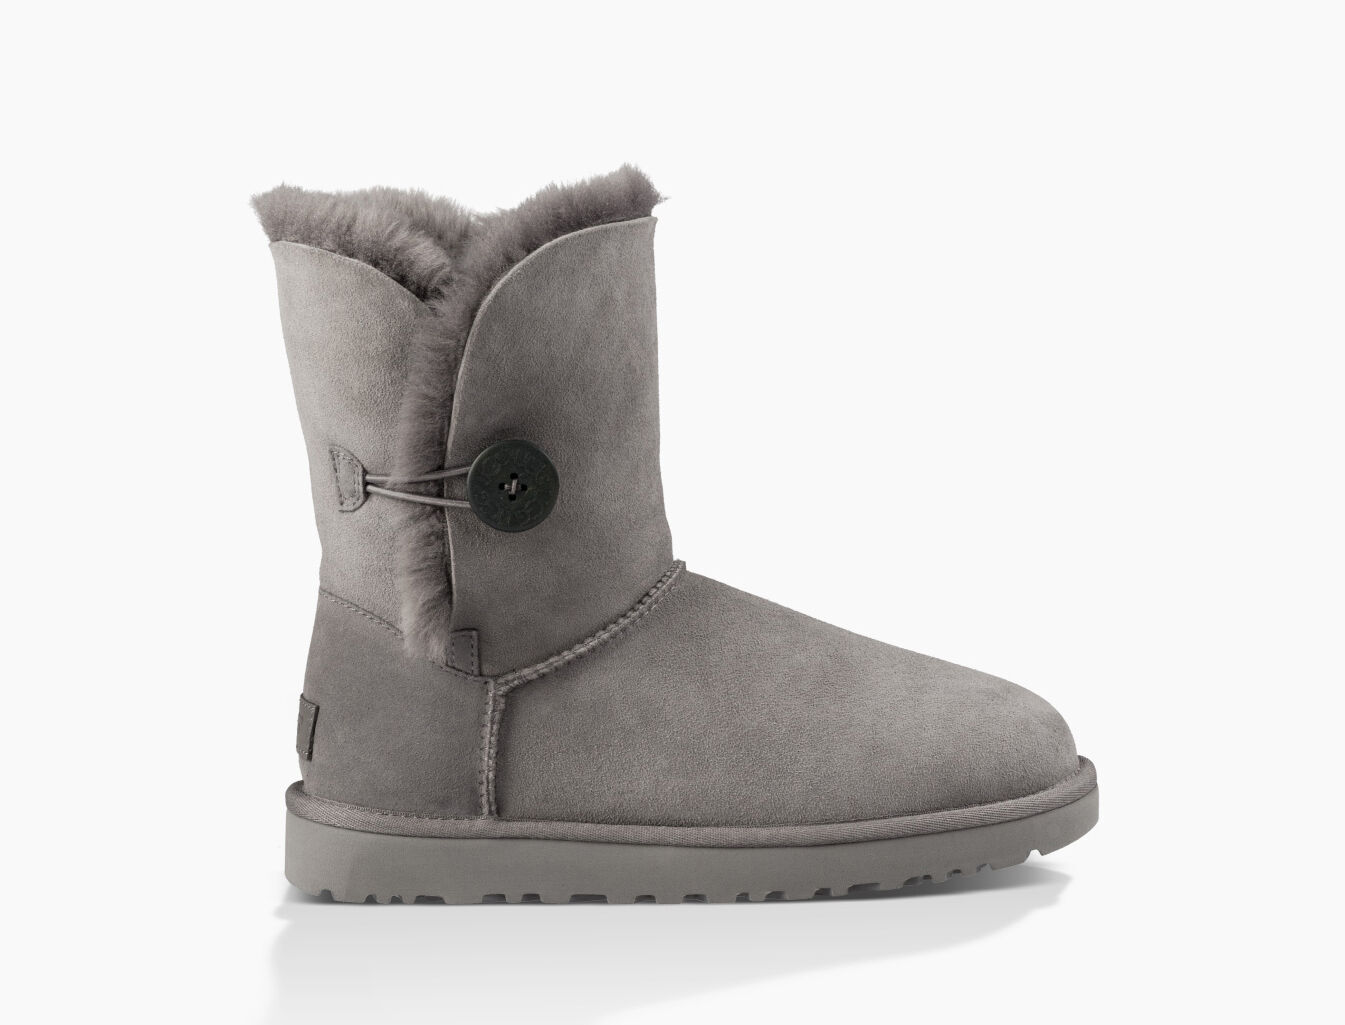 classic bailey boots with buttons ugg official rh ugg com ugg womens bailey button boots black ugg women's bailey button bling boots black